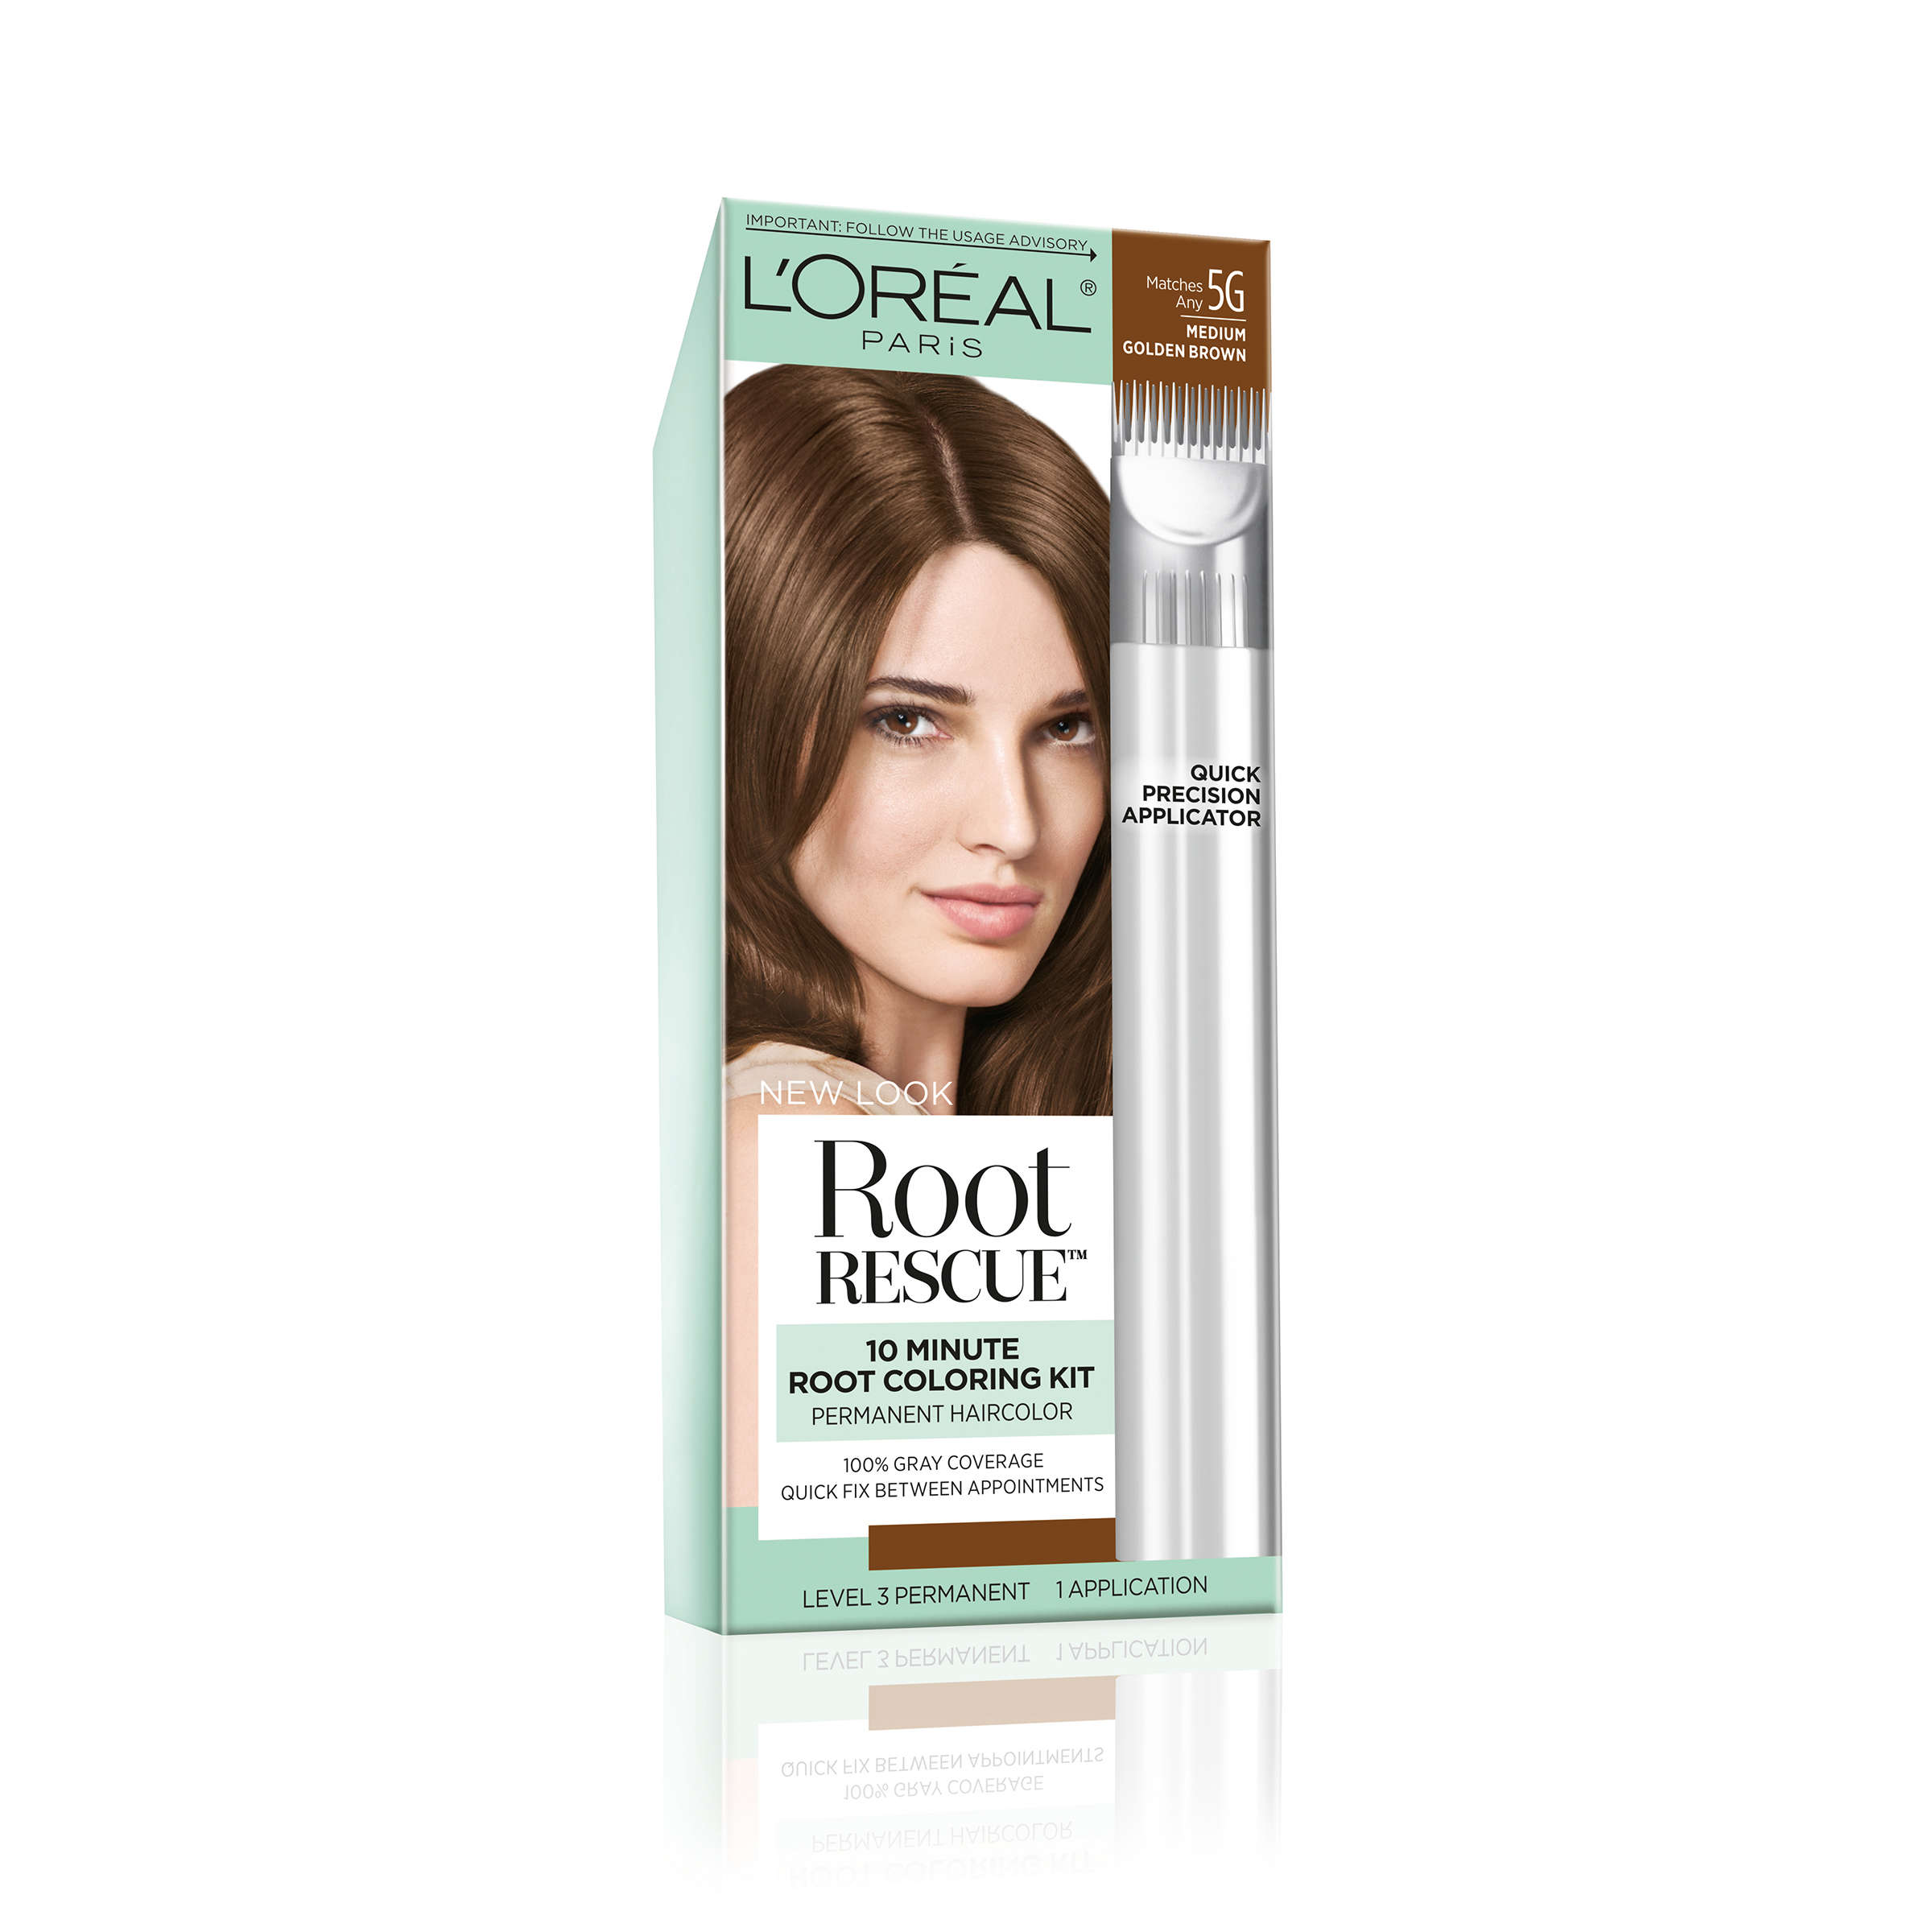 Loreal Paris Root Rescue Root Coloring Kit Walmart